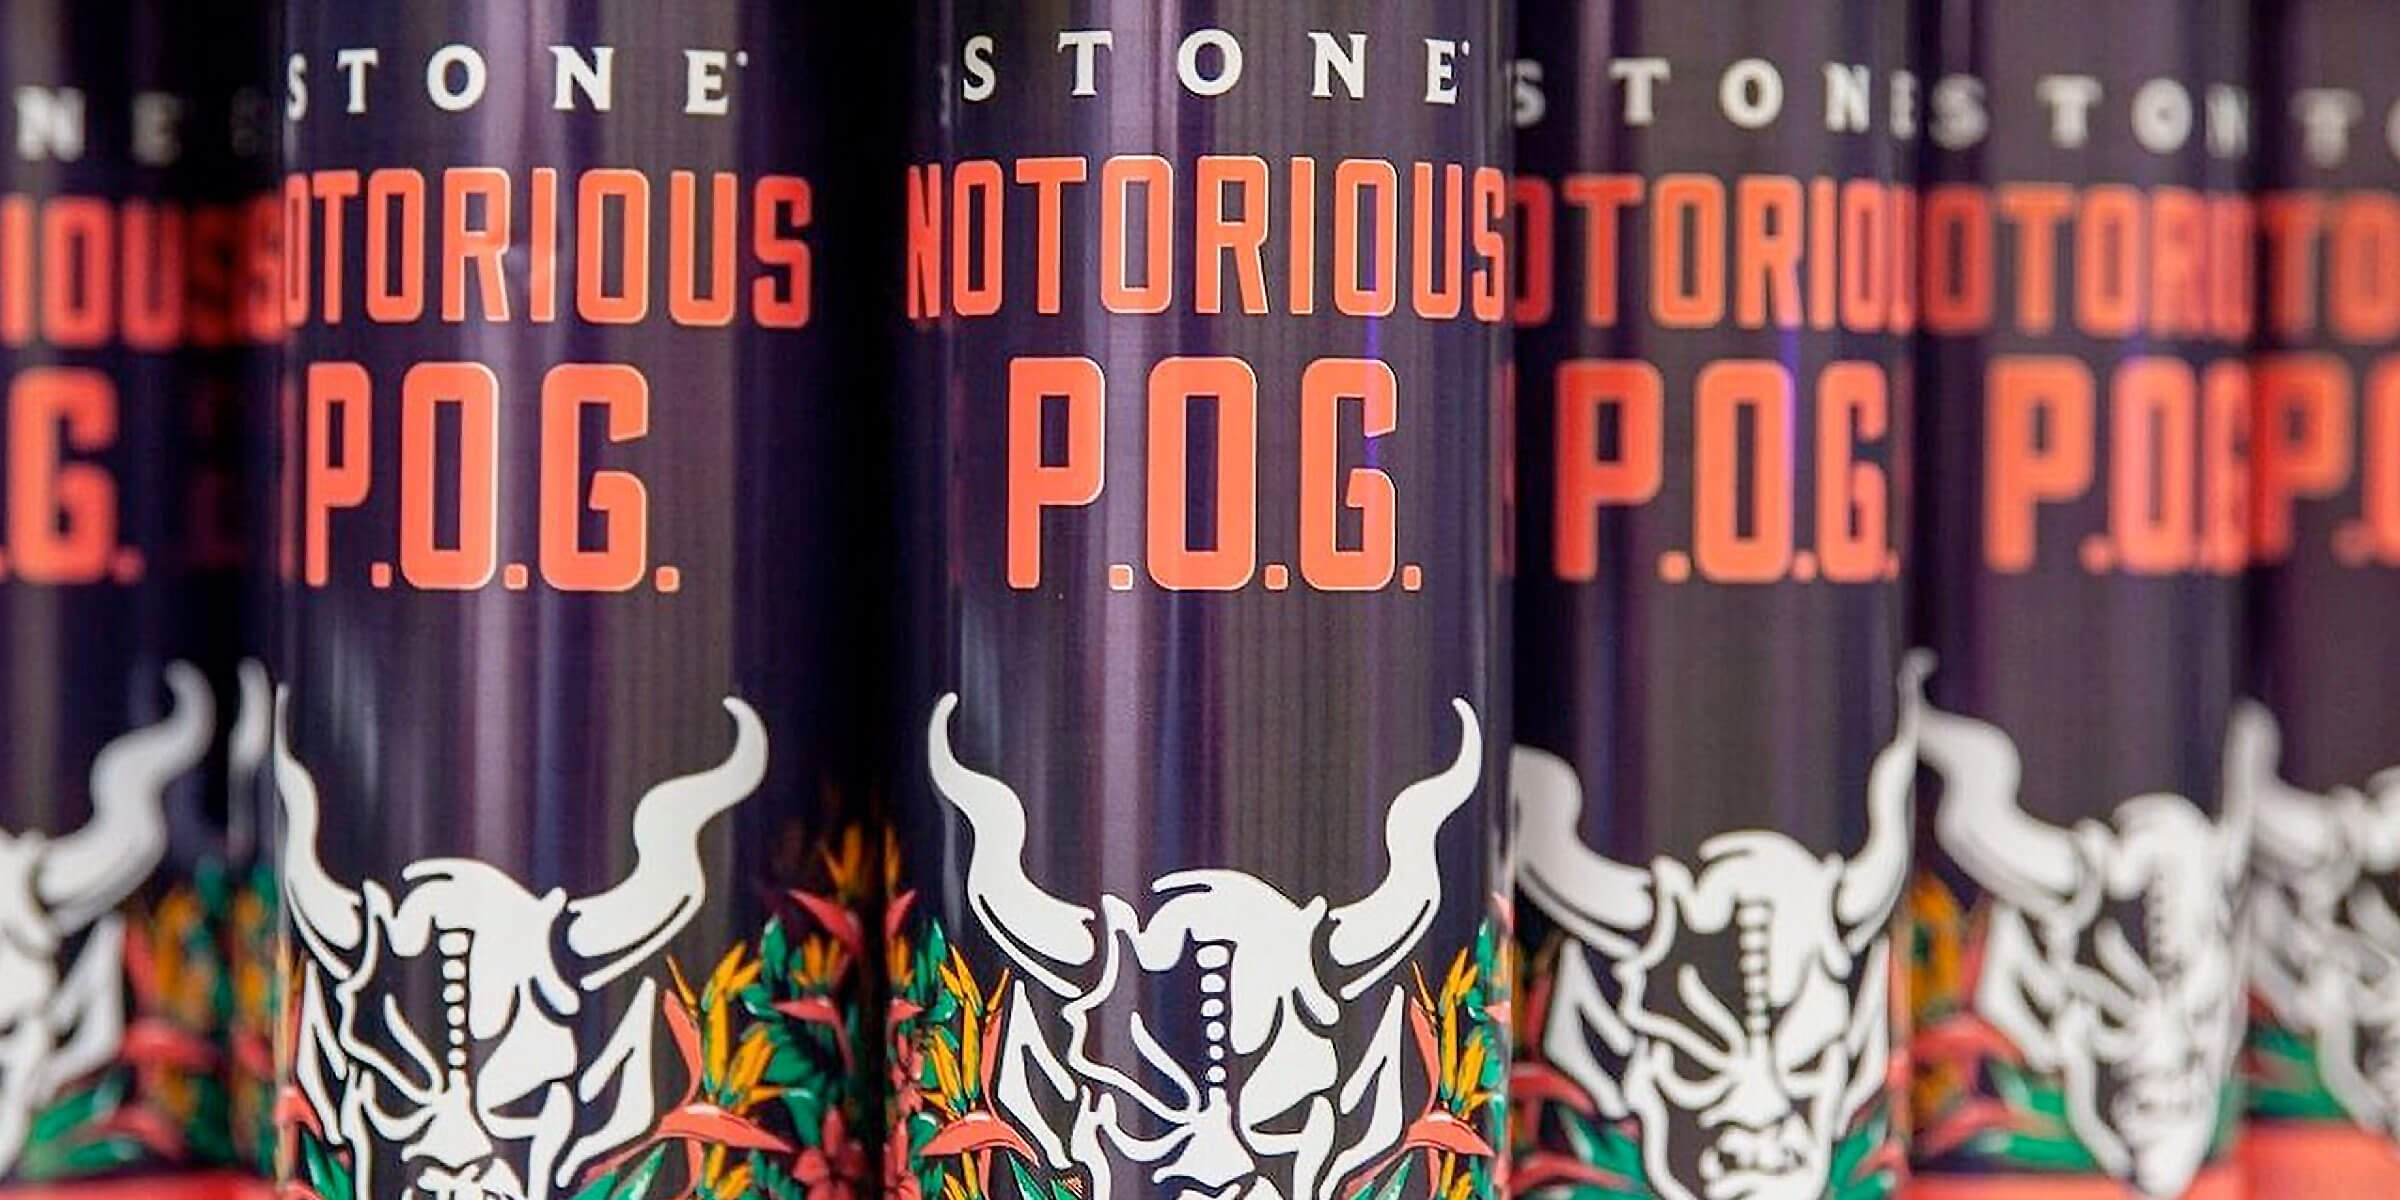 Stone Brewing has released fan favorite Stone Notorious P.O.G. Berliner Weisse. Brewed with passion fruit, orange and guava, it's available for a limited time.